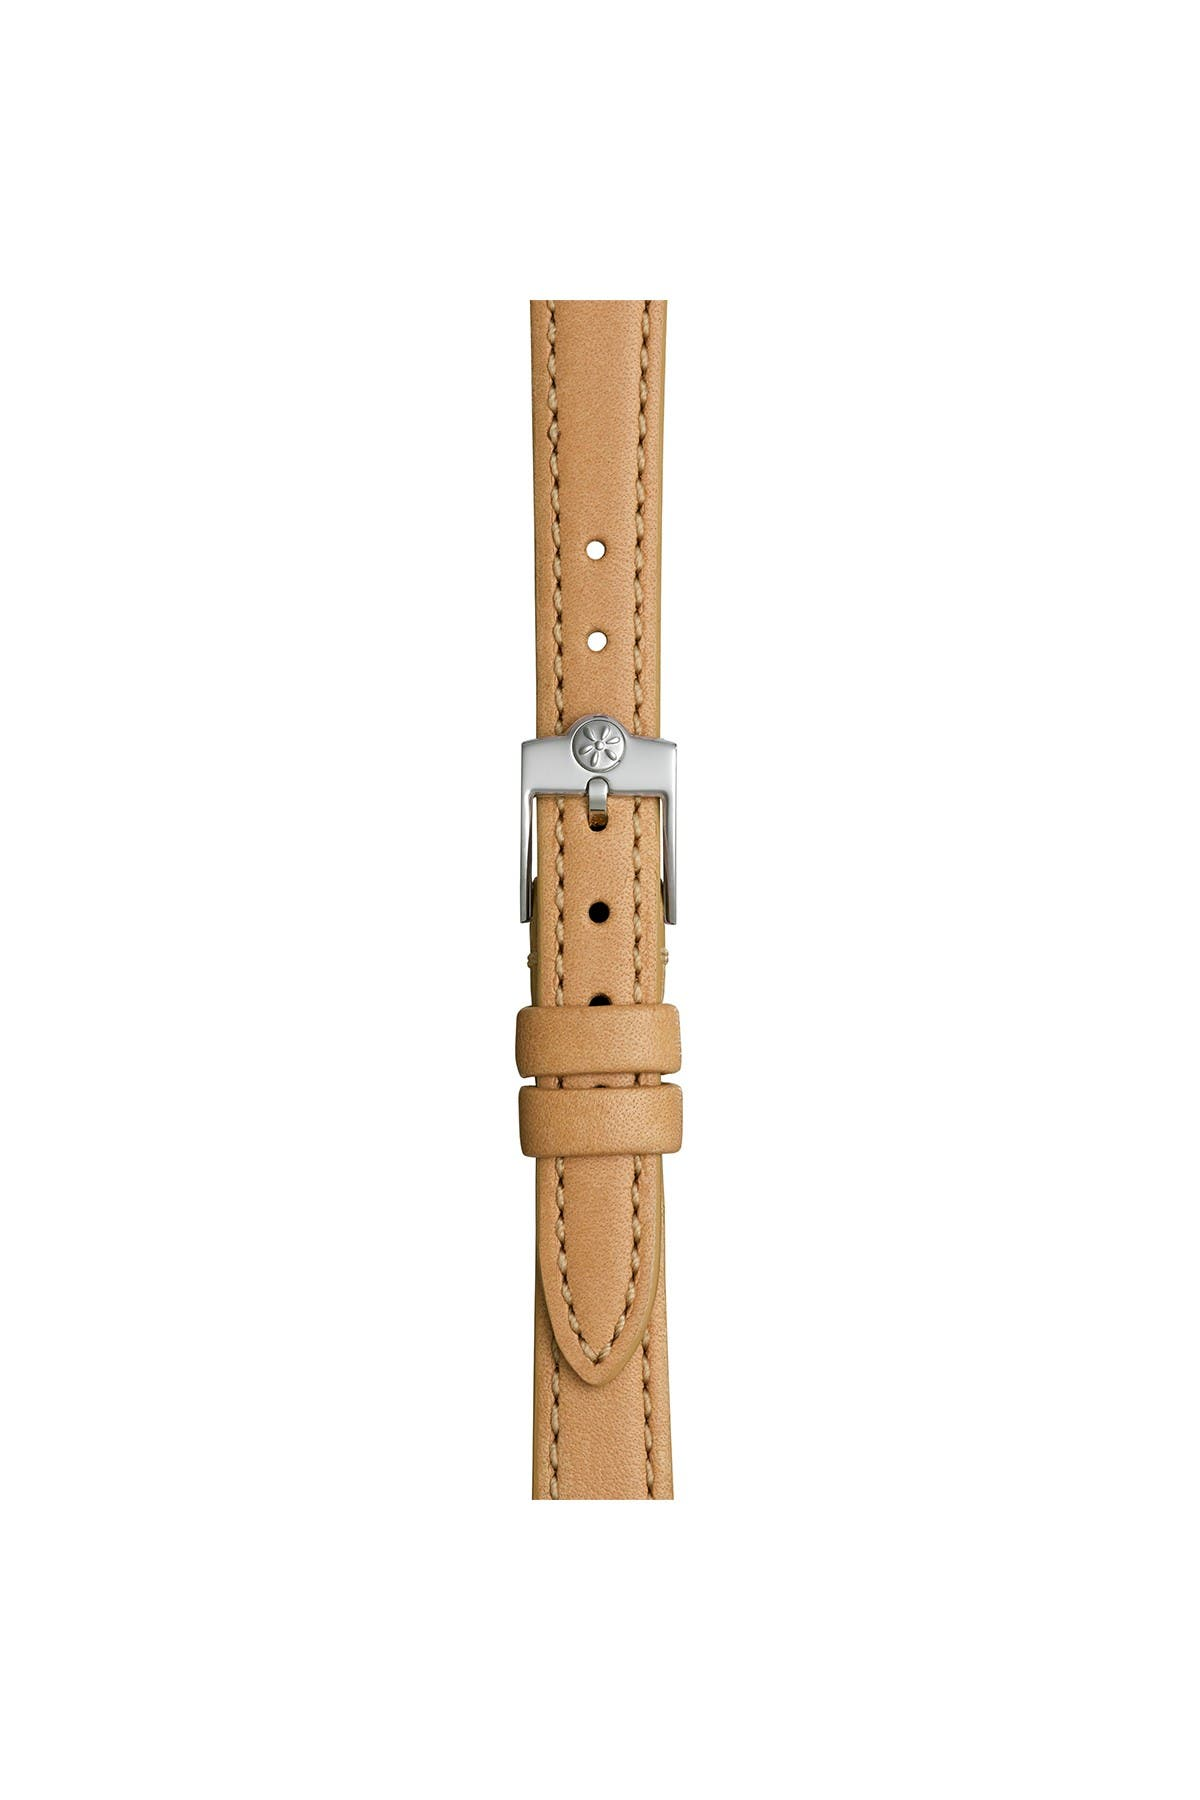 Image of Gomelsky by Shinola Leather Watch Strap